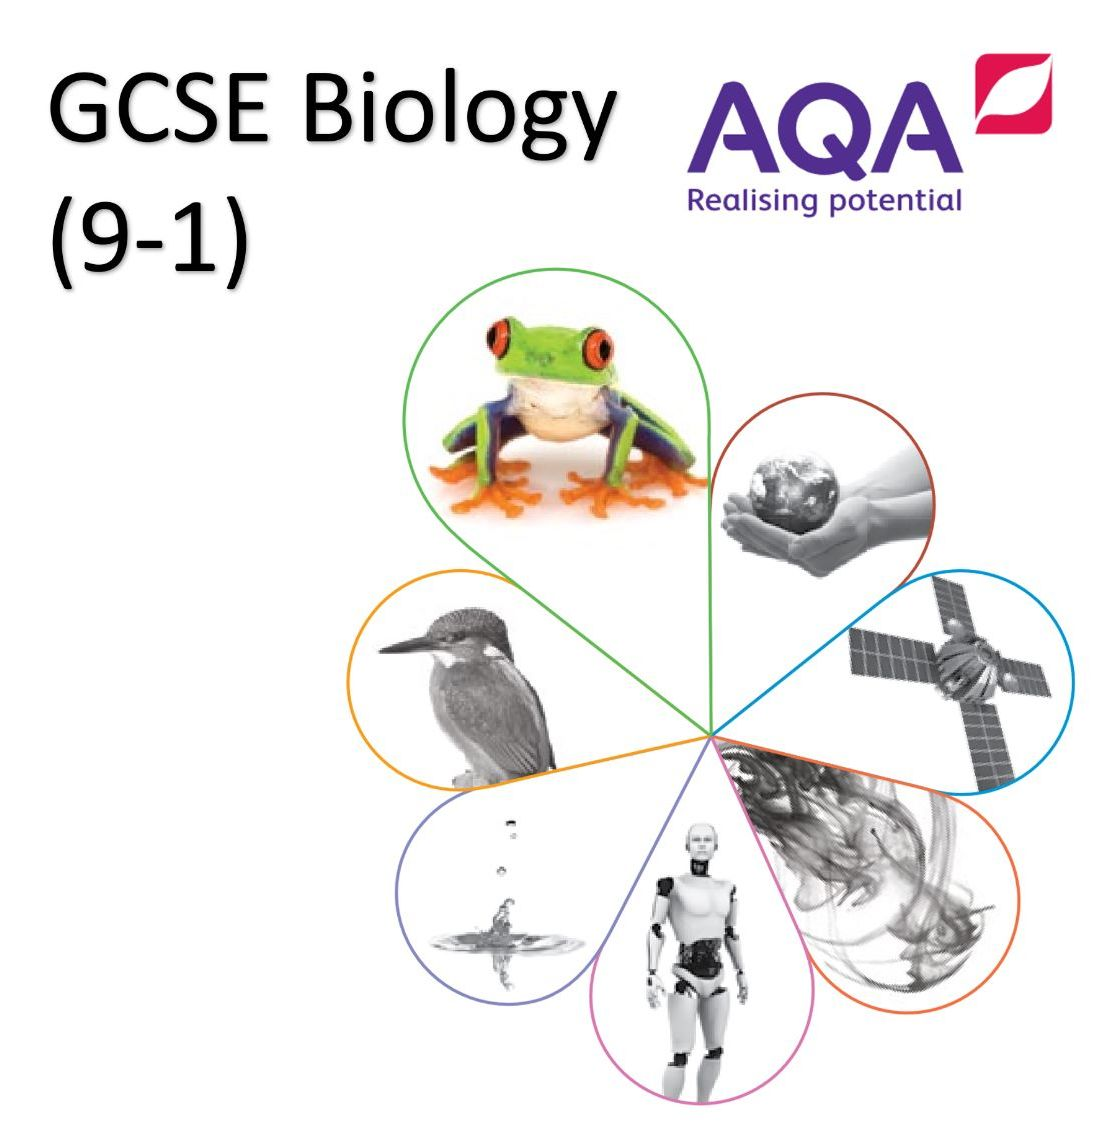 AQA GCSE Biology (9-1) Paper 1&2 Double Science Revision PowerPoints with Activities and Answers